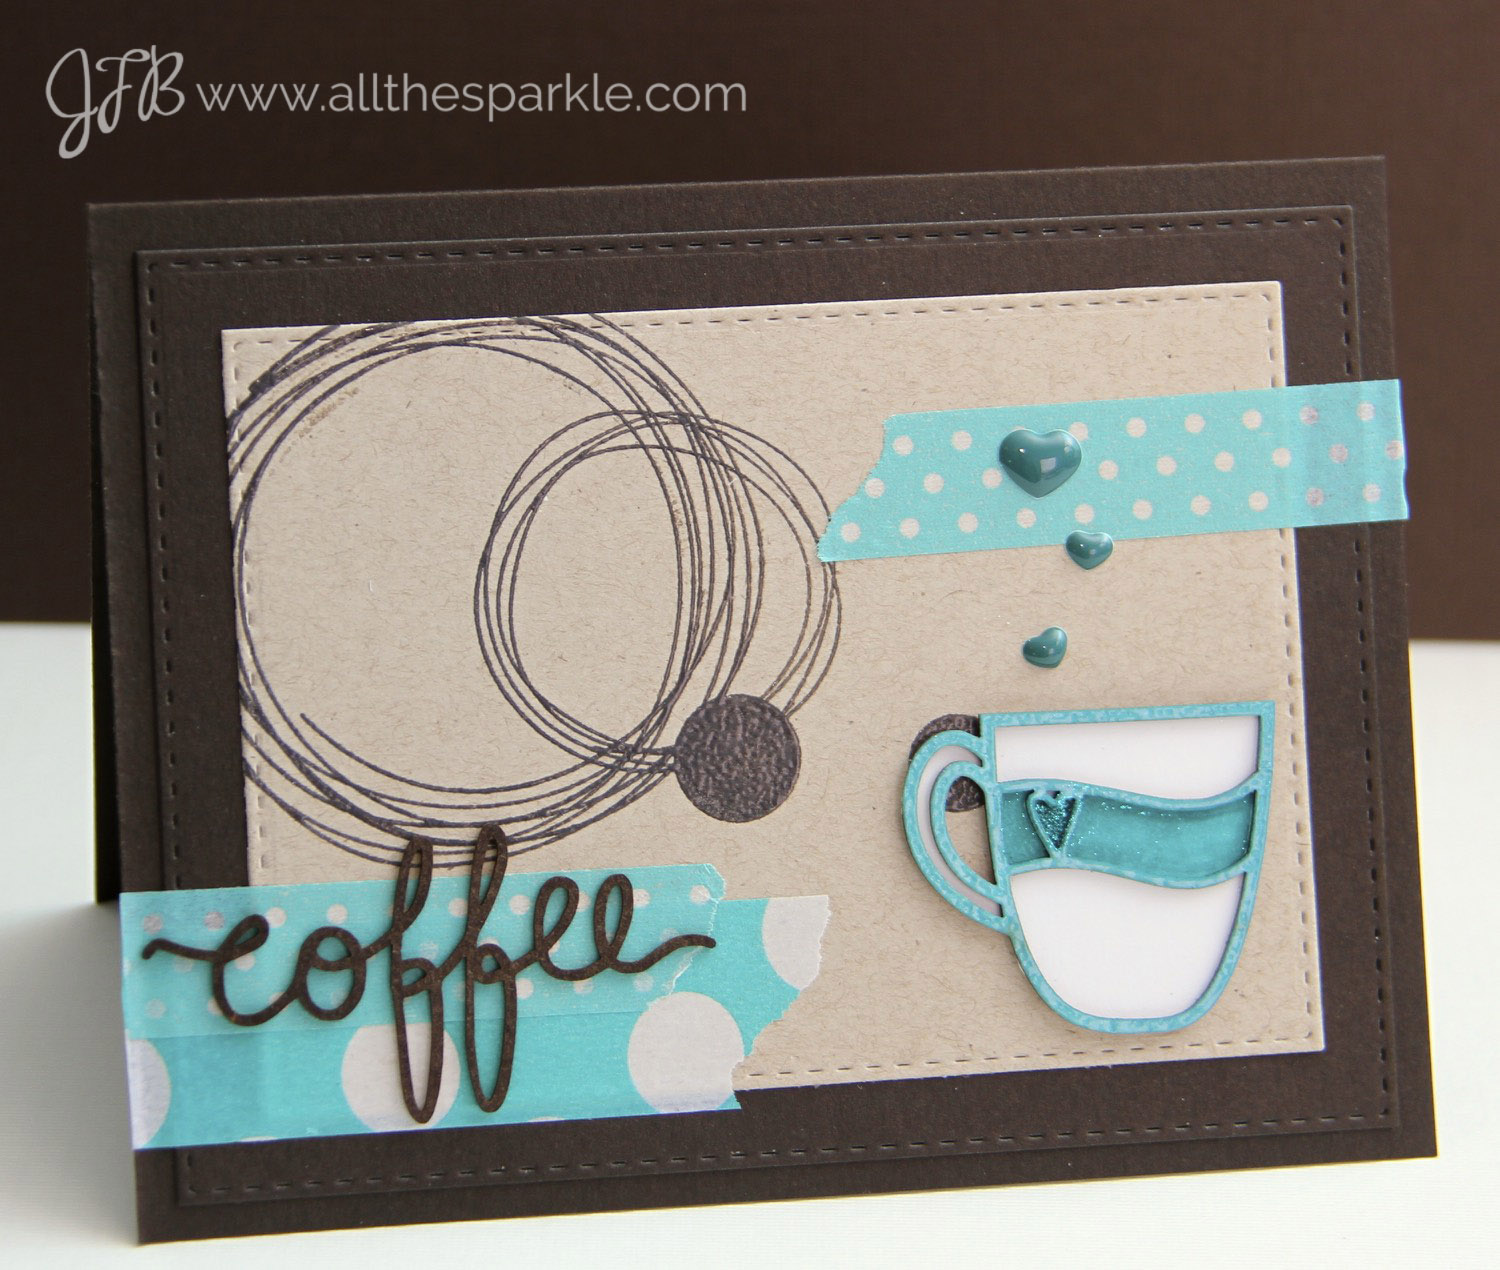 Spring Coffee Lovers Blog Hop (day 7) and a GIVEAWAY!